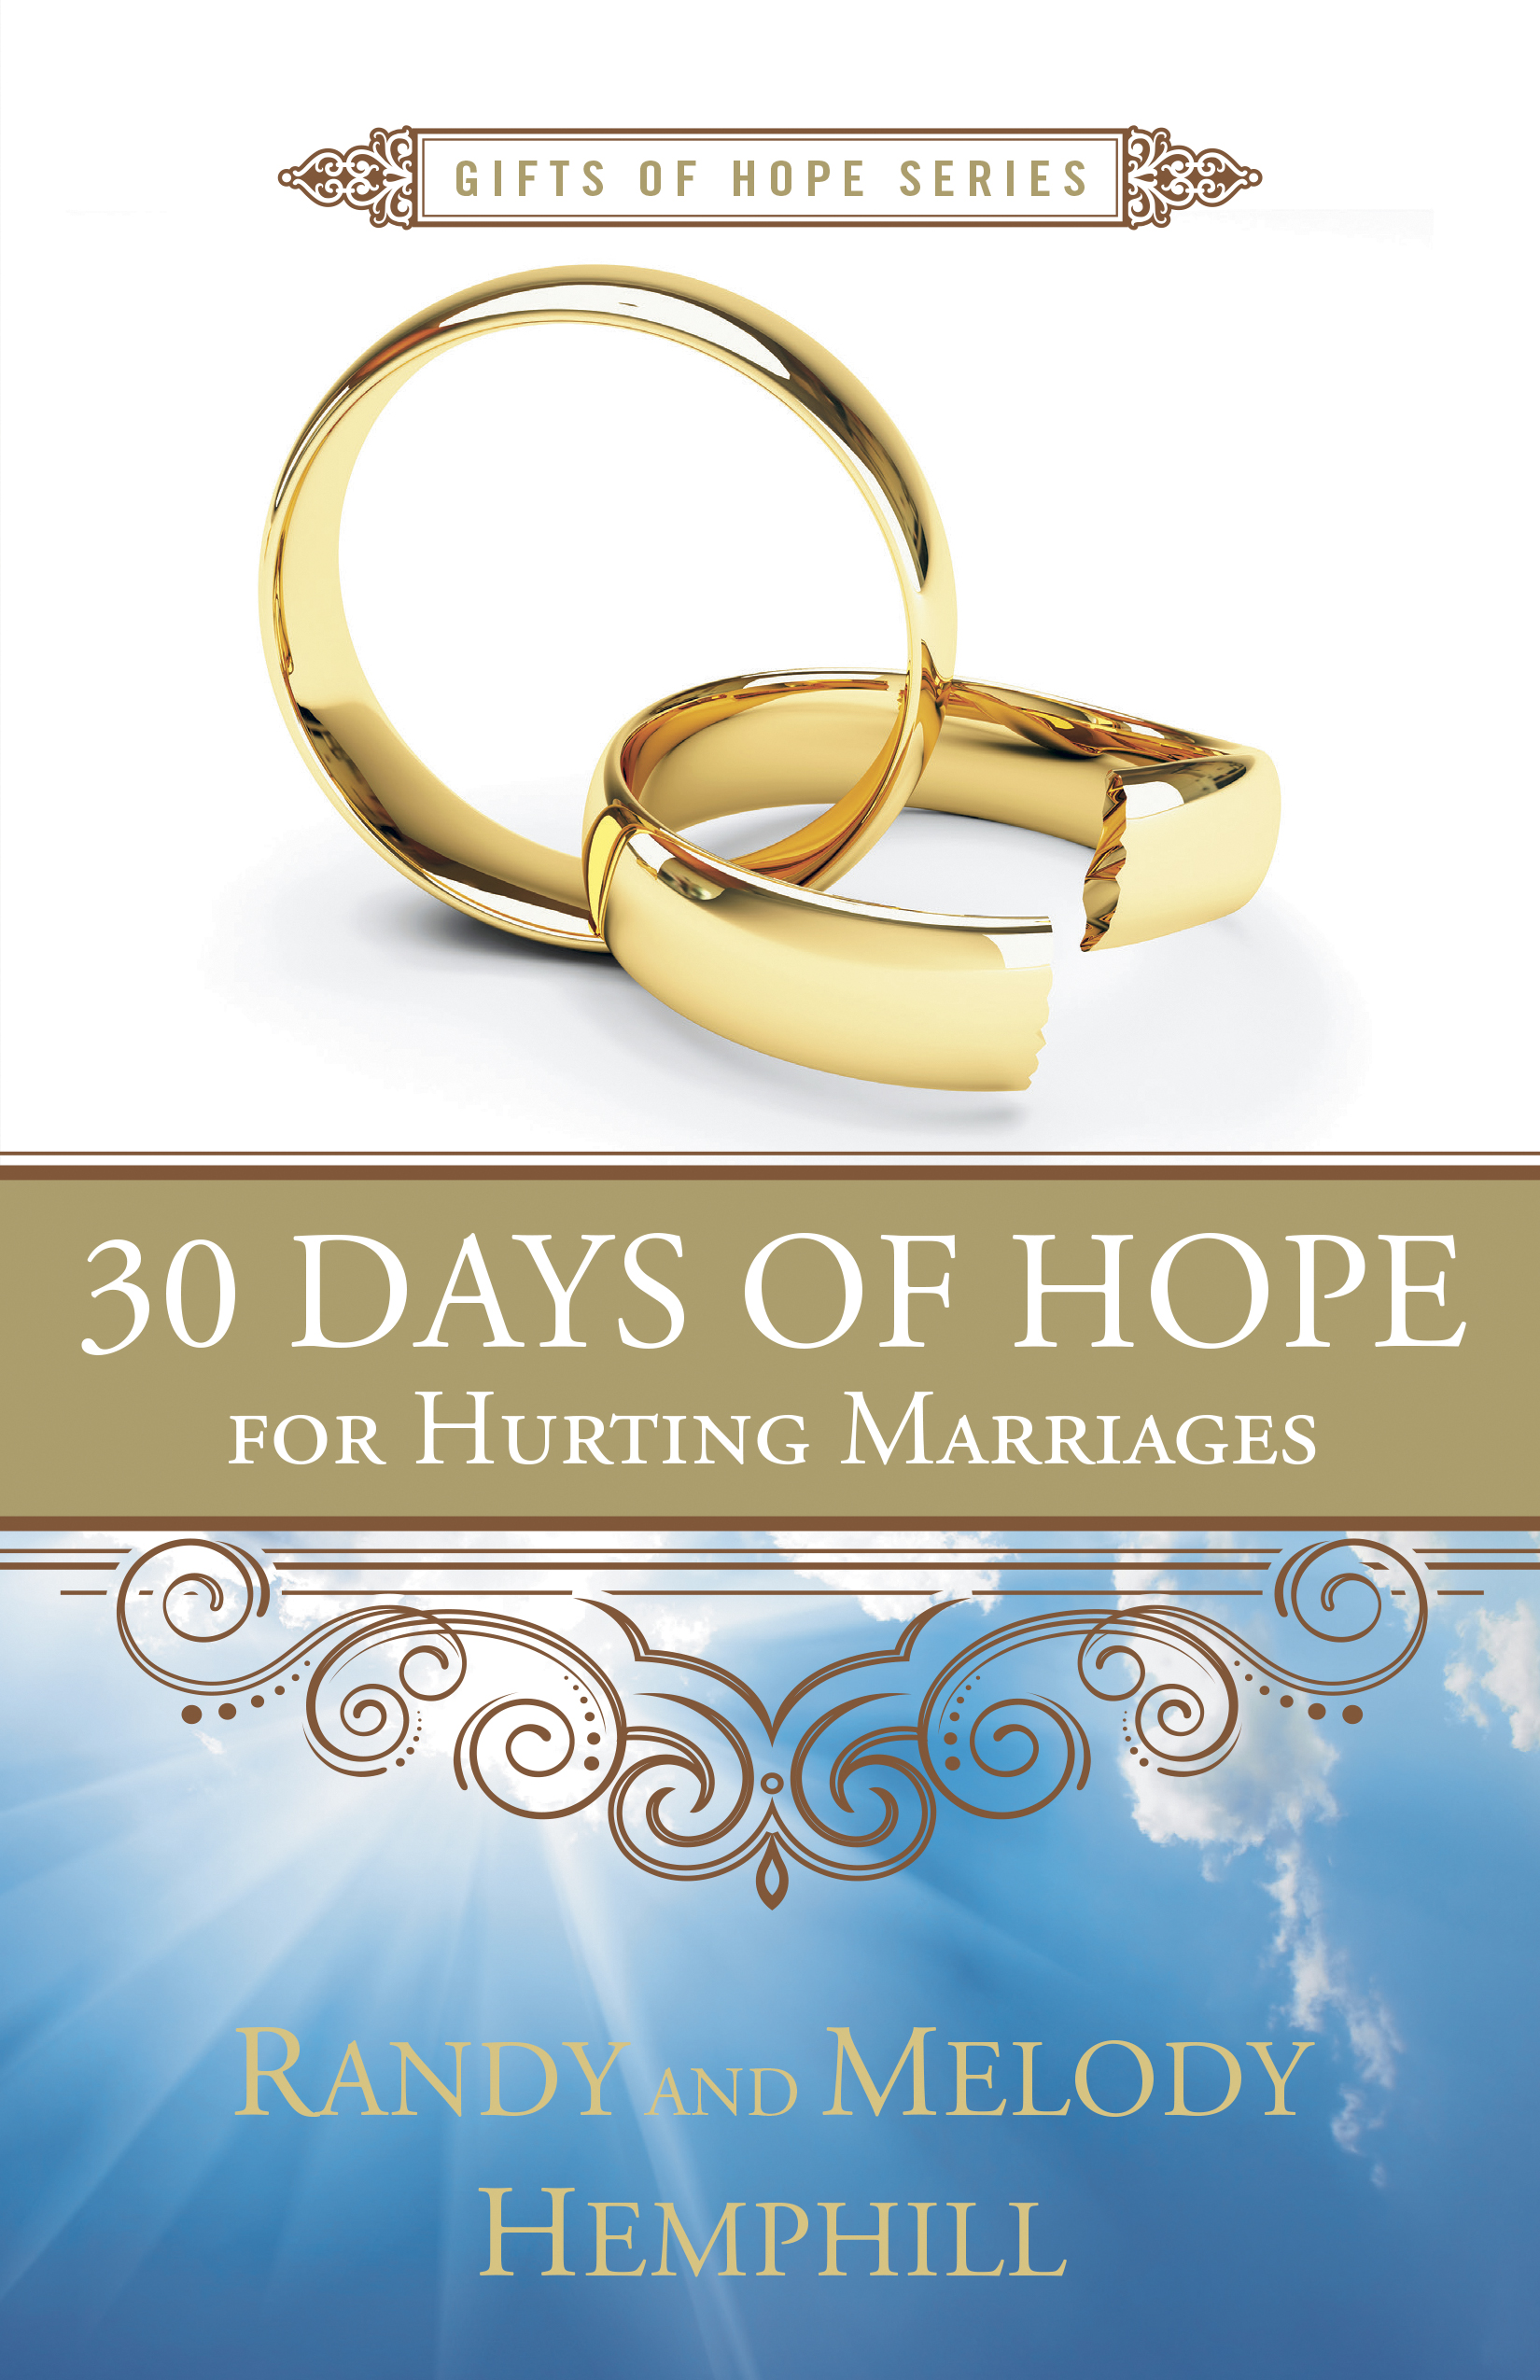 30DaysHurtingMarriages_N174106